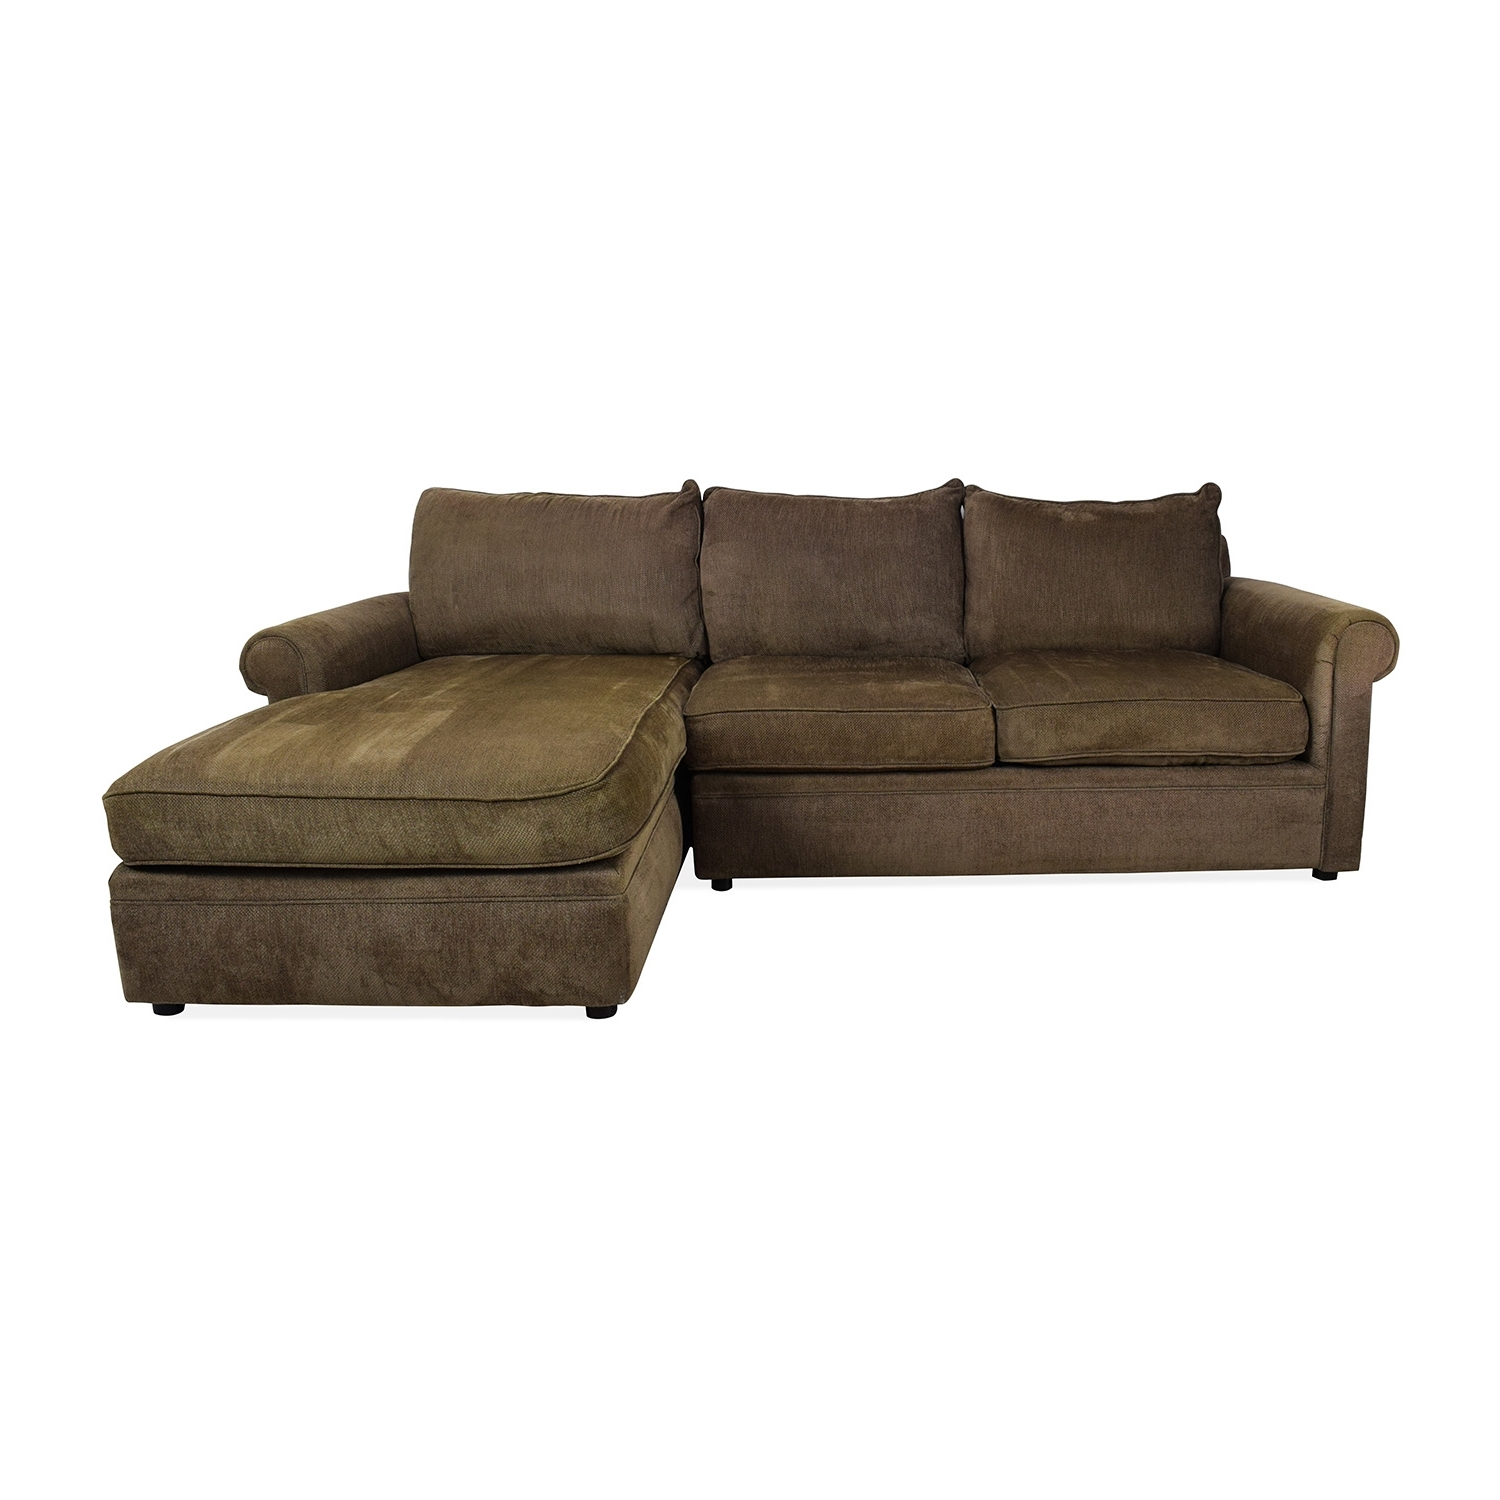 [%83% Off – Bloomingdales Bloomingdale's Sectional / Sofas With Regard To Newest Nj Sectional Sofas|nj Sectional Sofas Within Most Up To Date 83% Off – Bloomingdales Bloomingdale's Sectional / Sofas|2018 Nj Sectional Sofas Regarding 83% Off – Bloomingdales Bloomingdale's Sectional / Sofas|most Up To Date 83% Off – Bloomingdales Bloomingdale's Sectional / Sofas Within Nj Sectional Sofas%] (View 11 of 20)